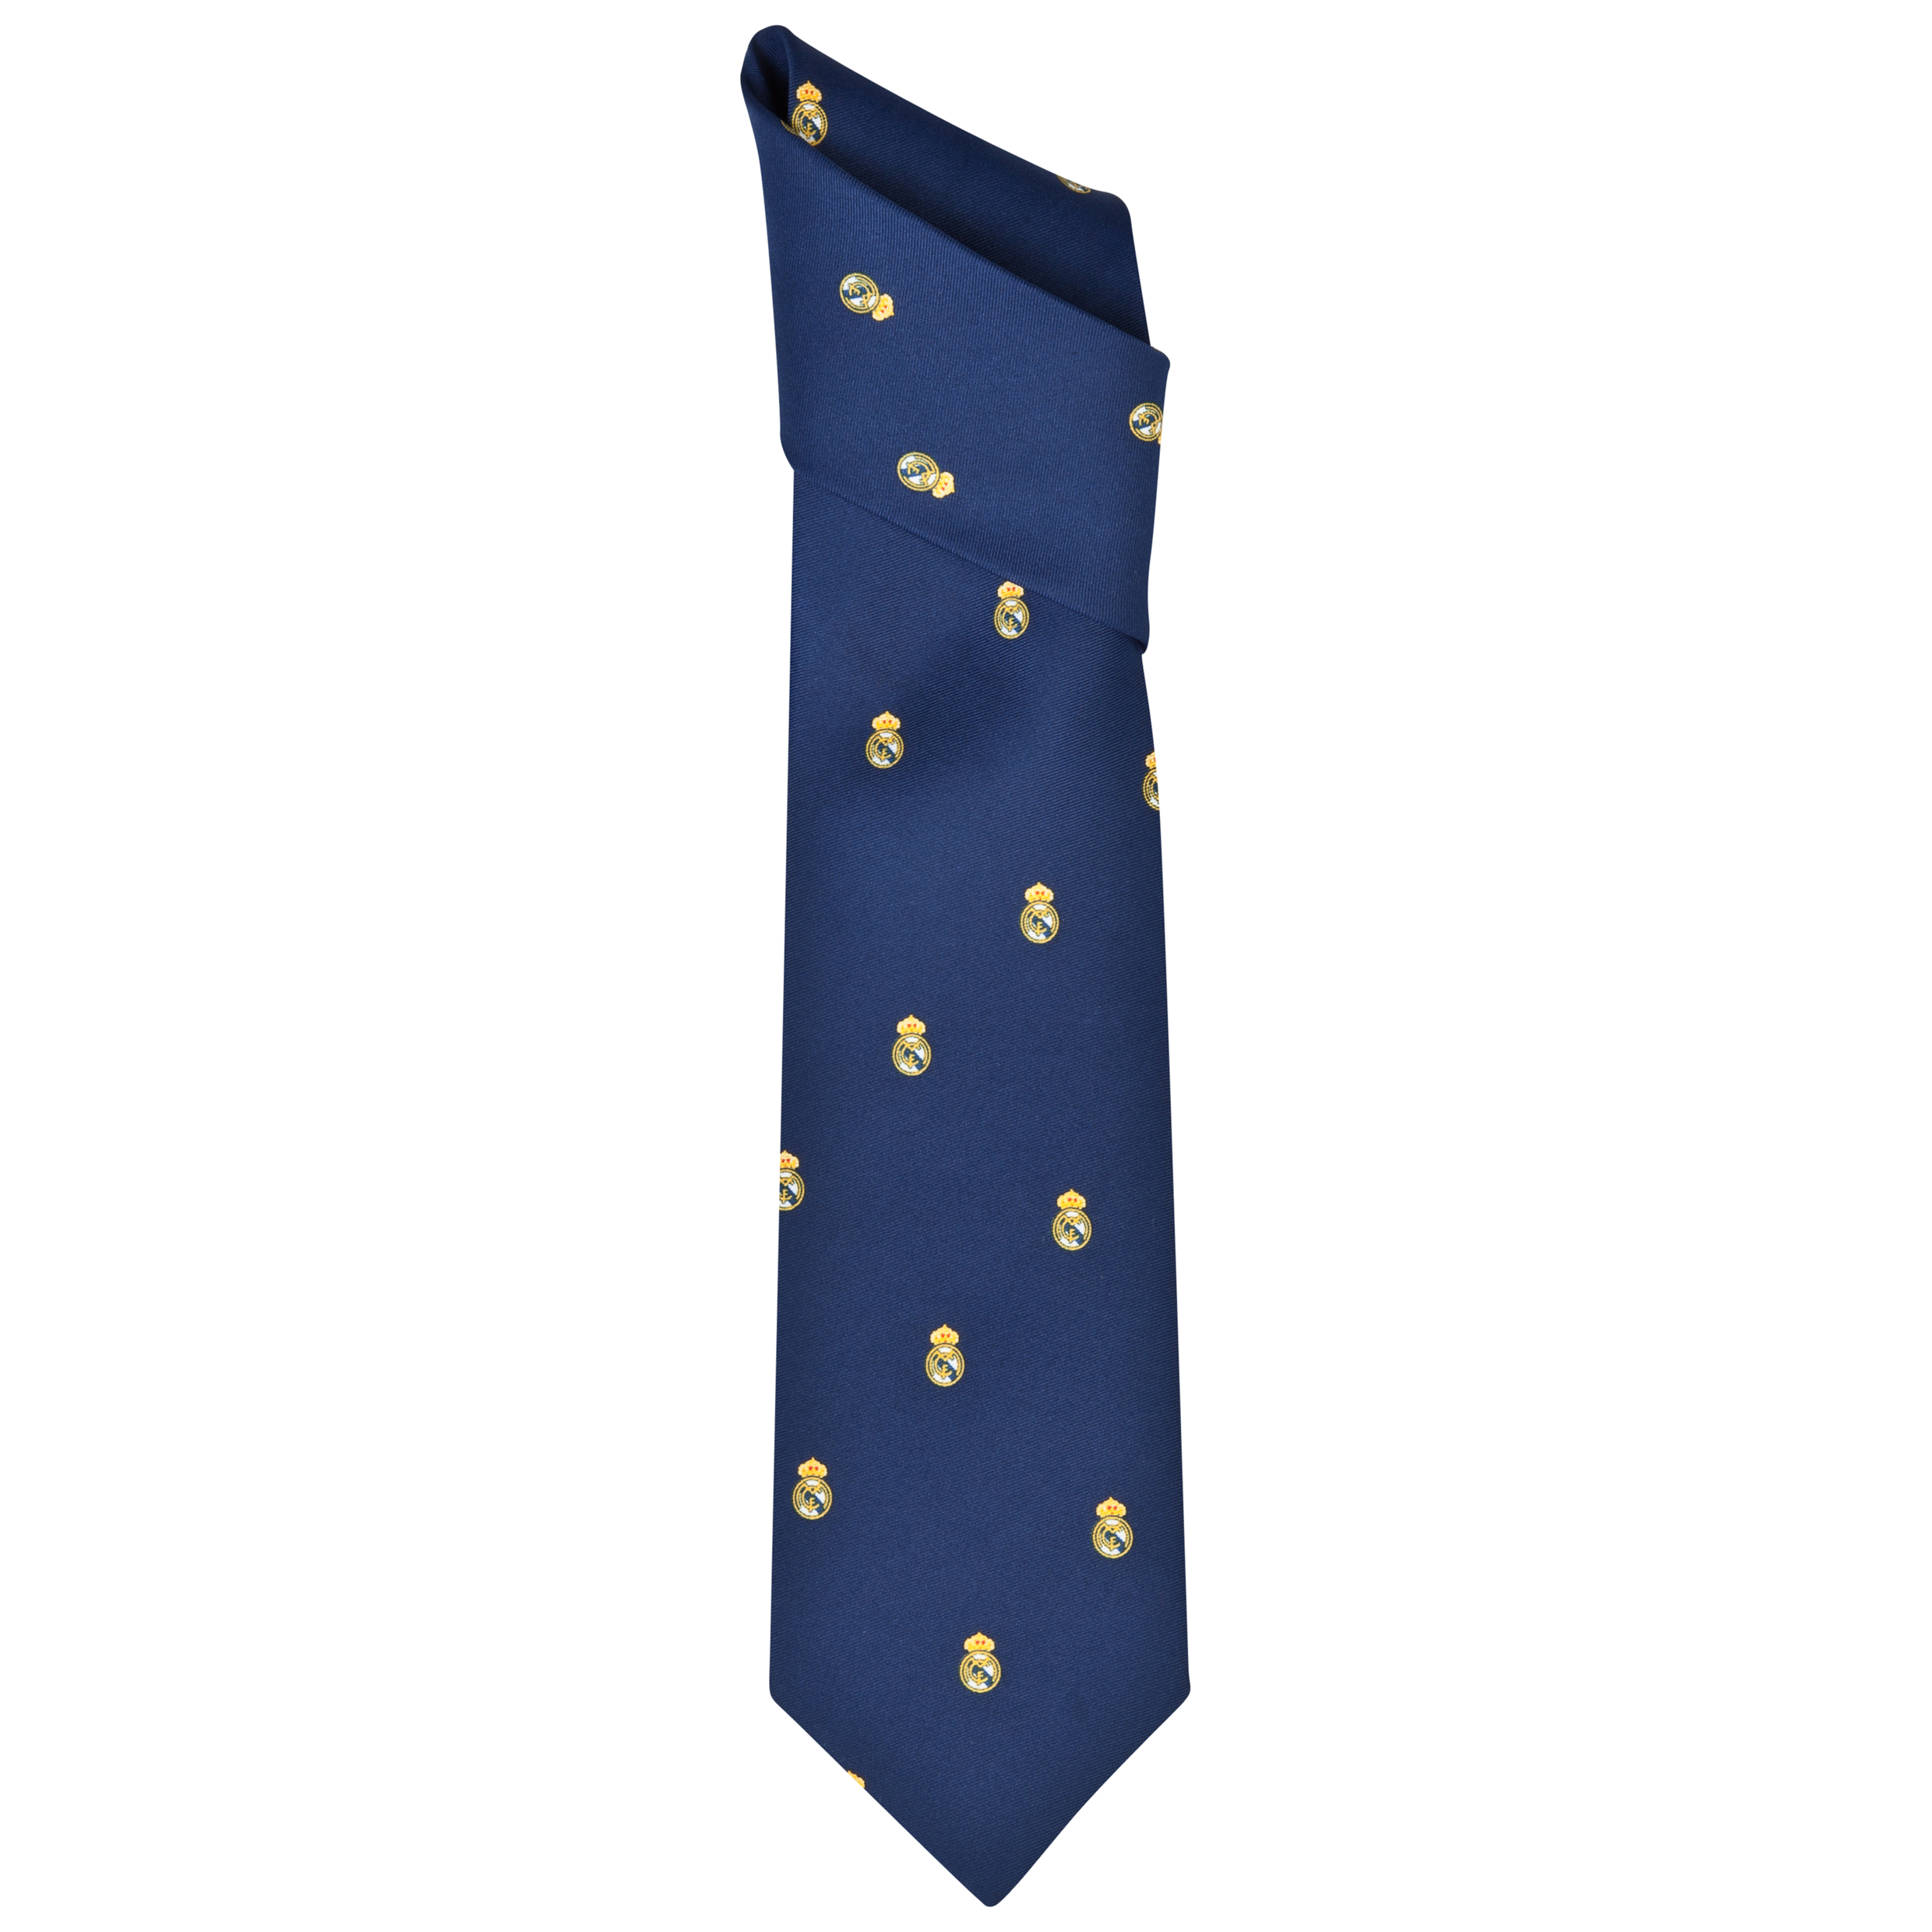 Real Madrid Repeat Crest Tie - Polyester